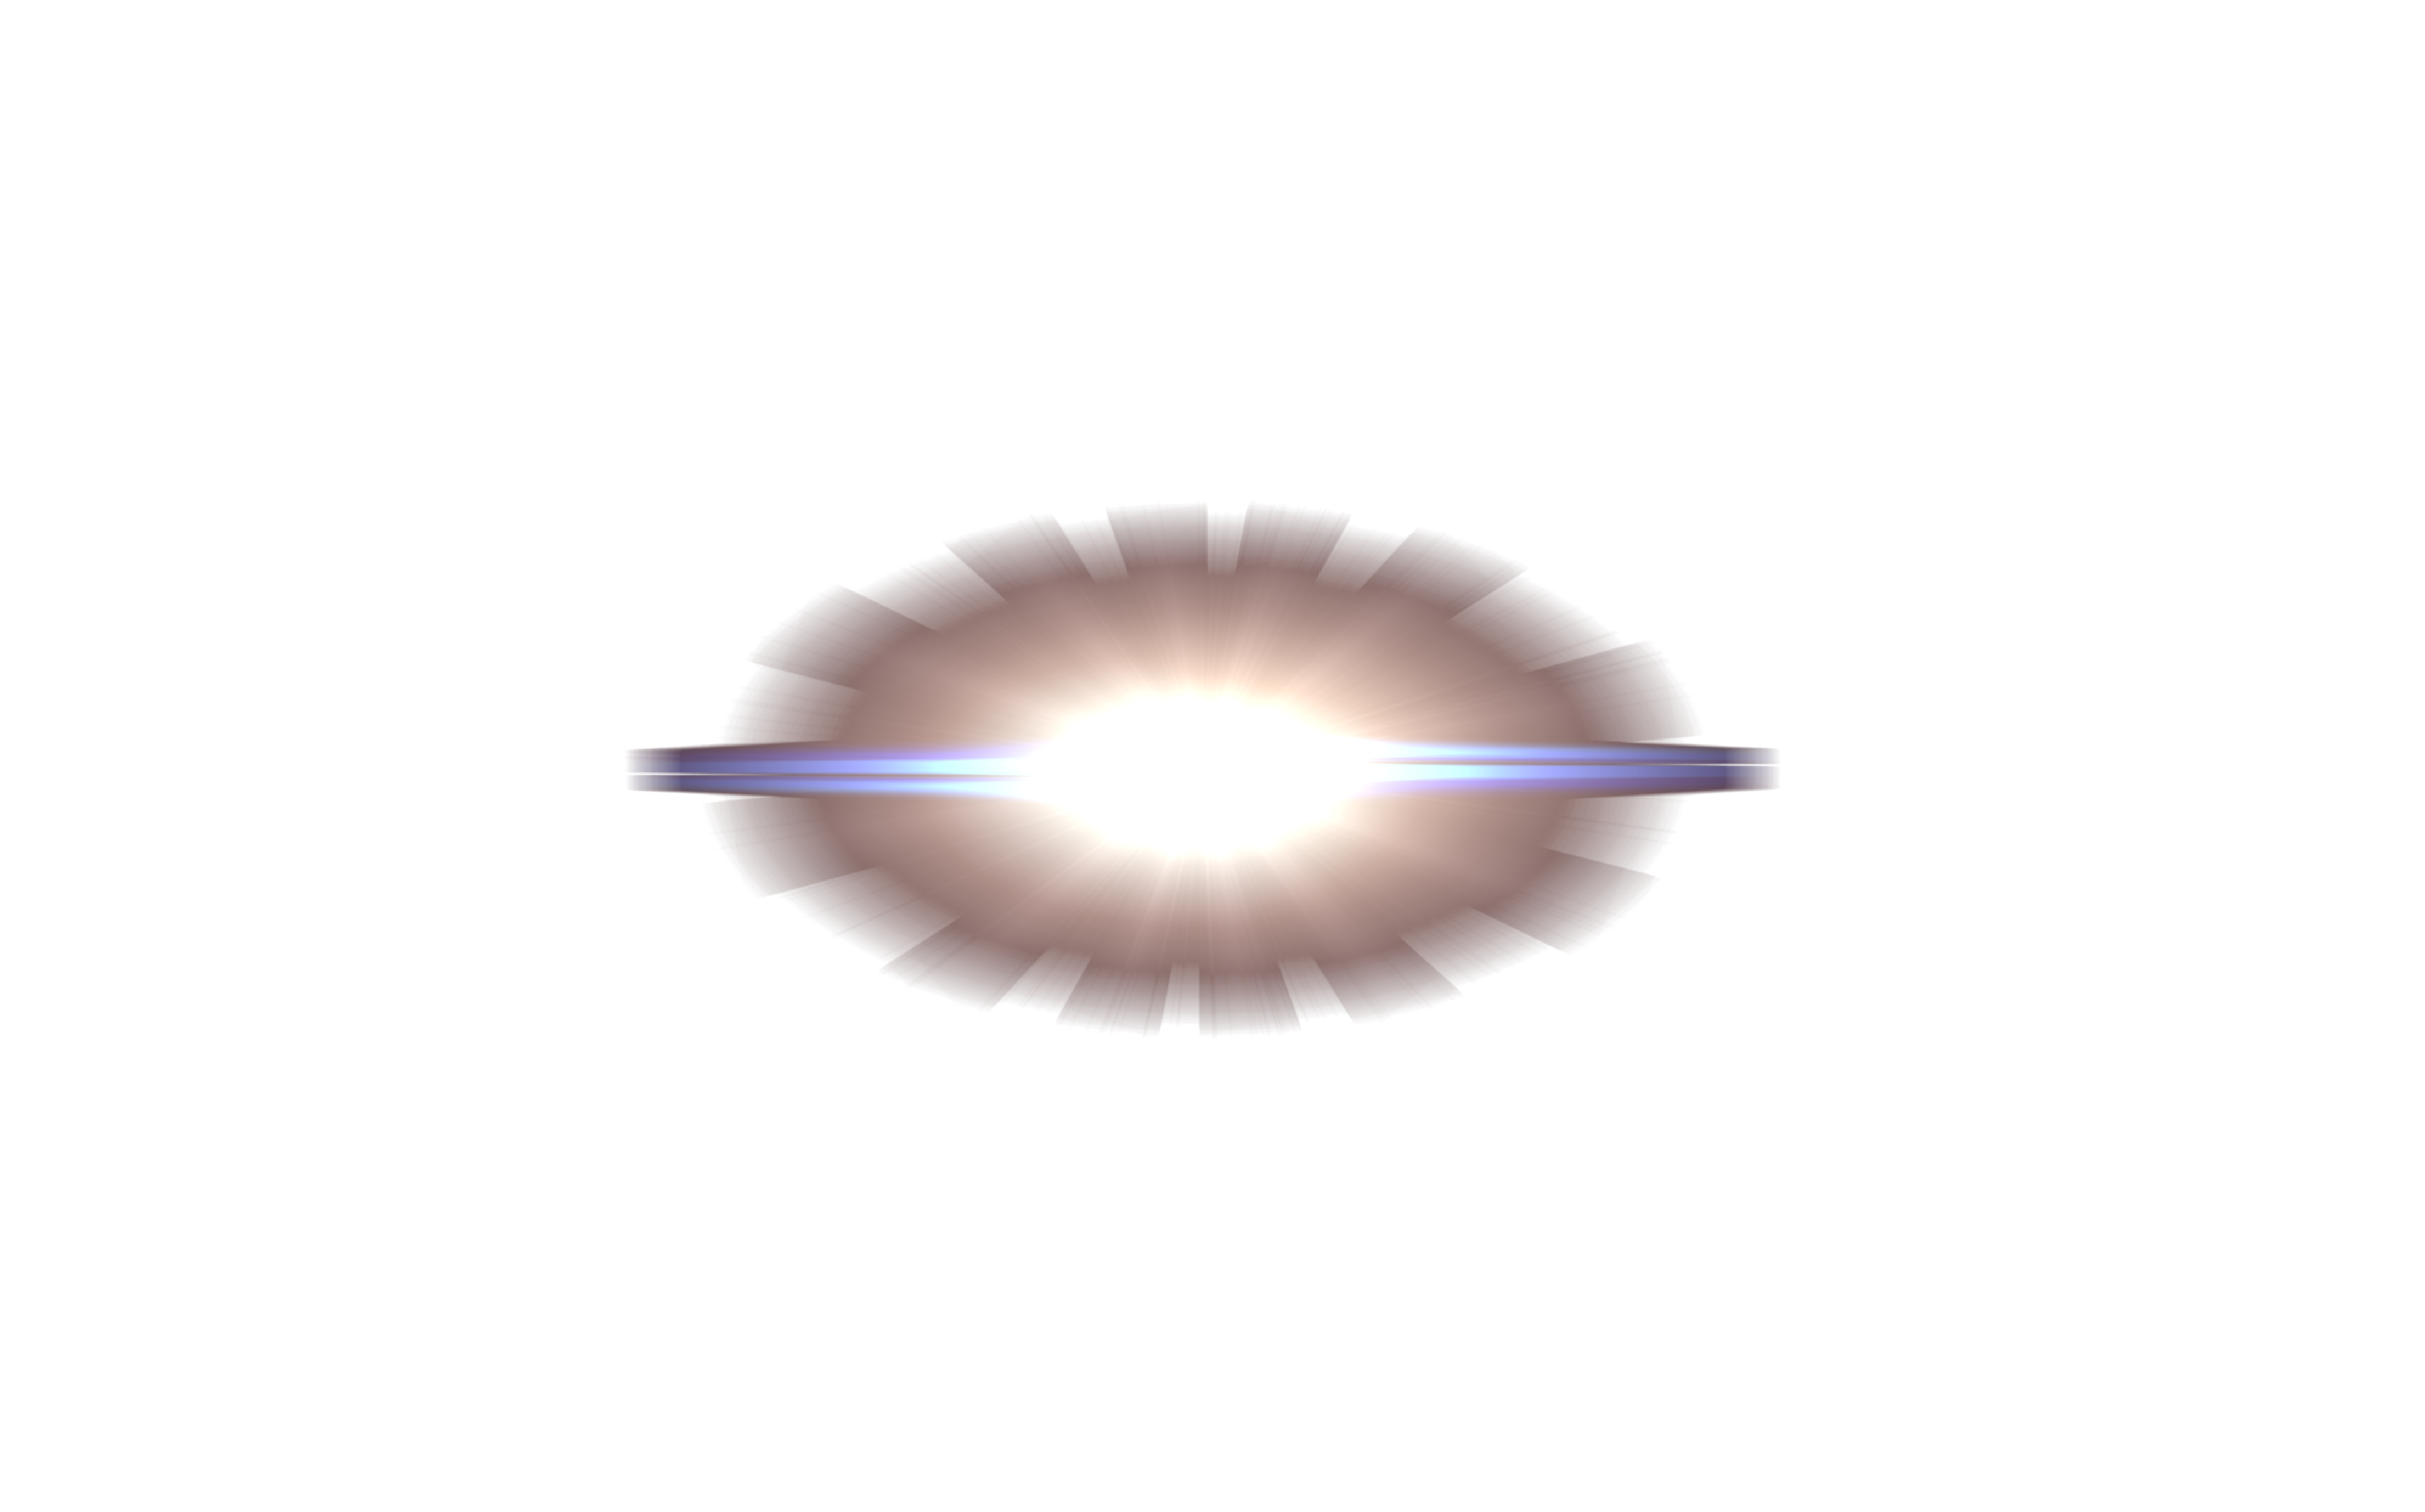 free download lens flare png